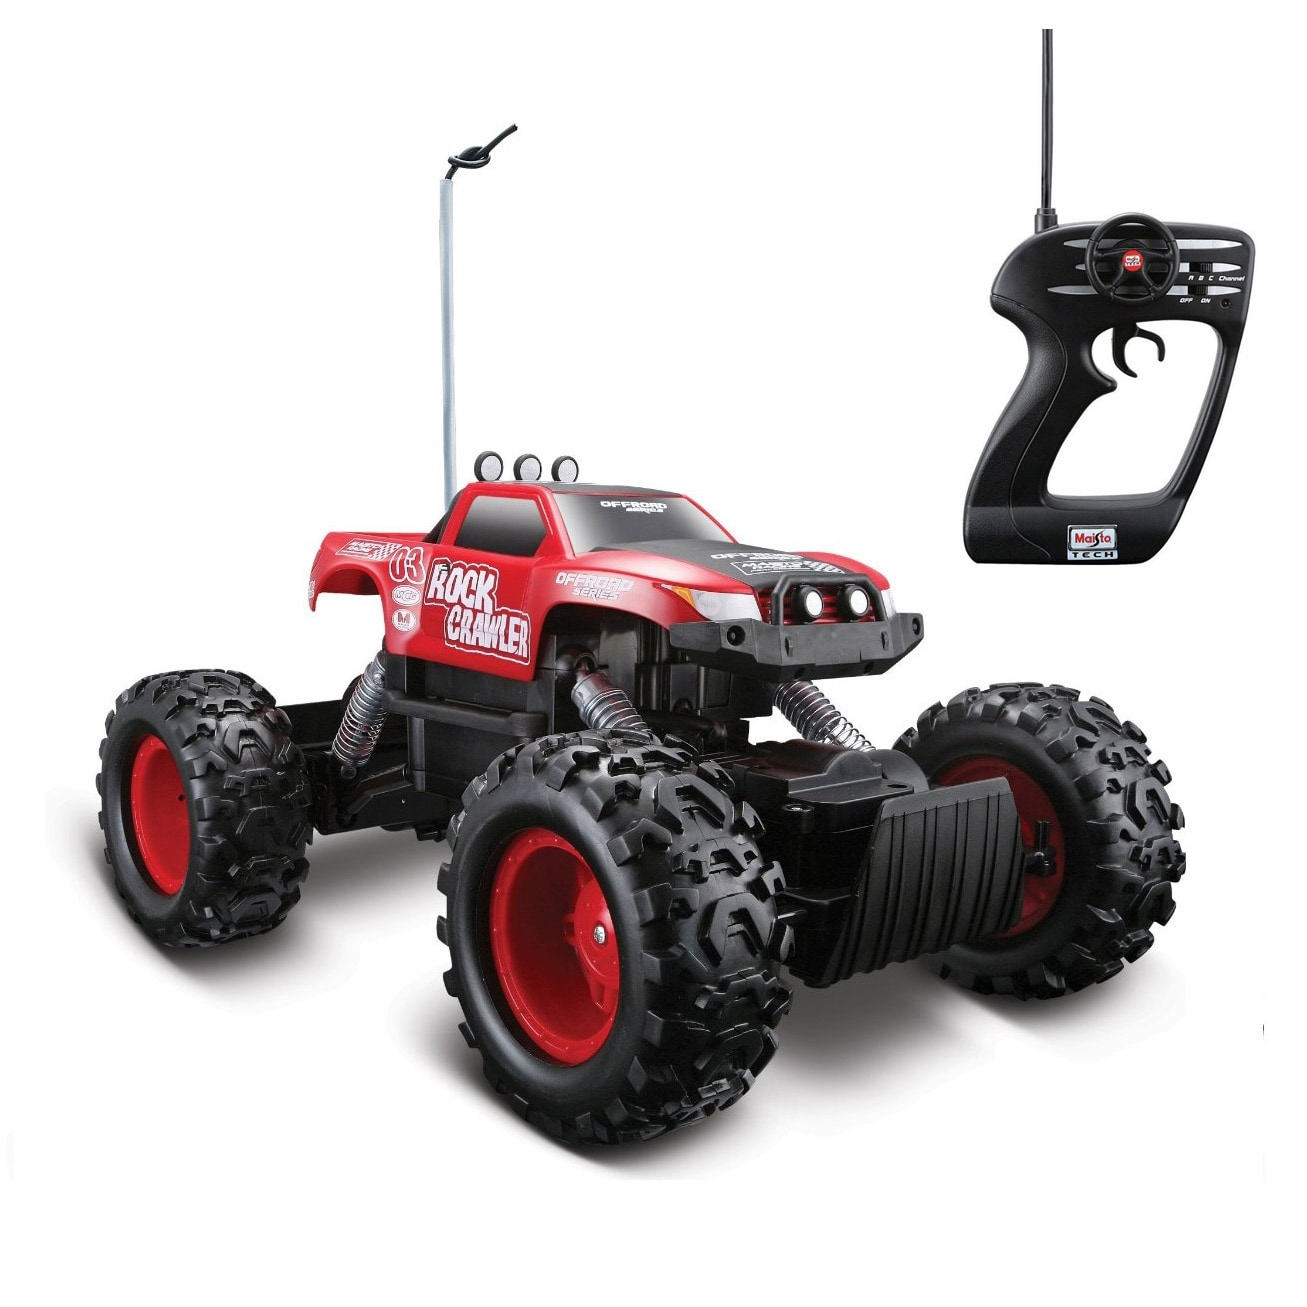 Shop Remote Control 4wd Tri Band Off Road Rock Crawler Rtr Monster Truck Overstock 5261848